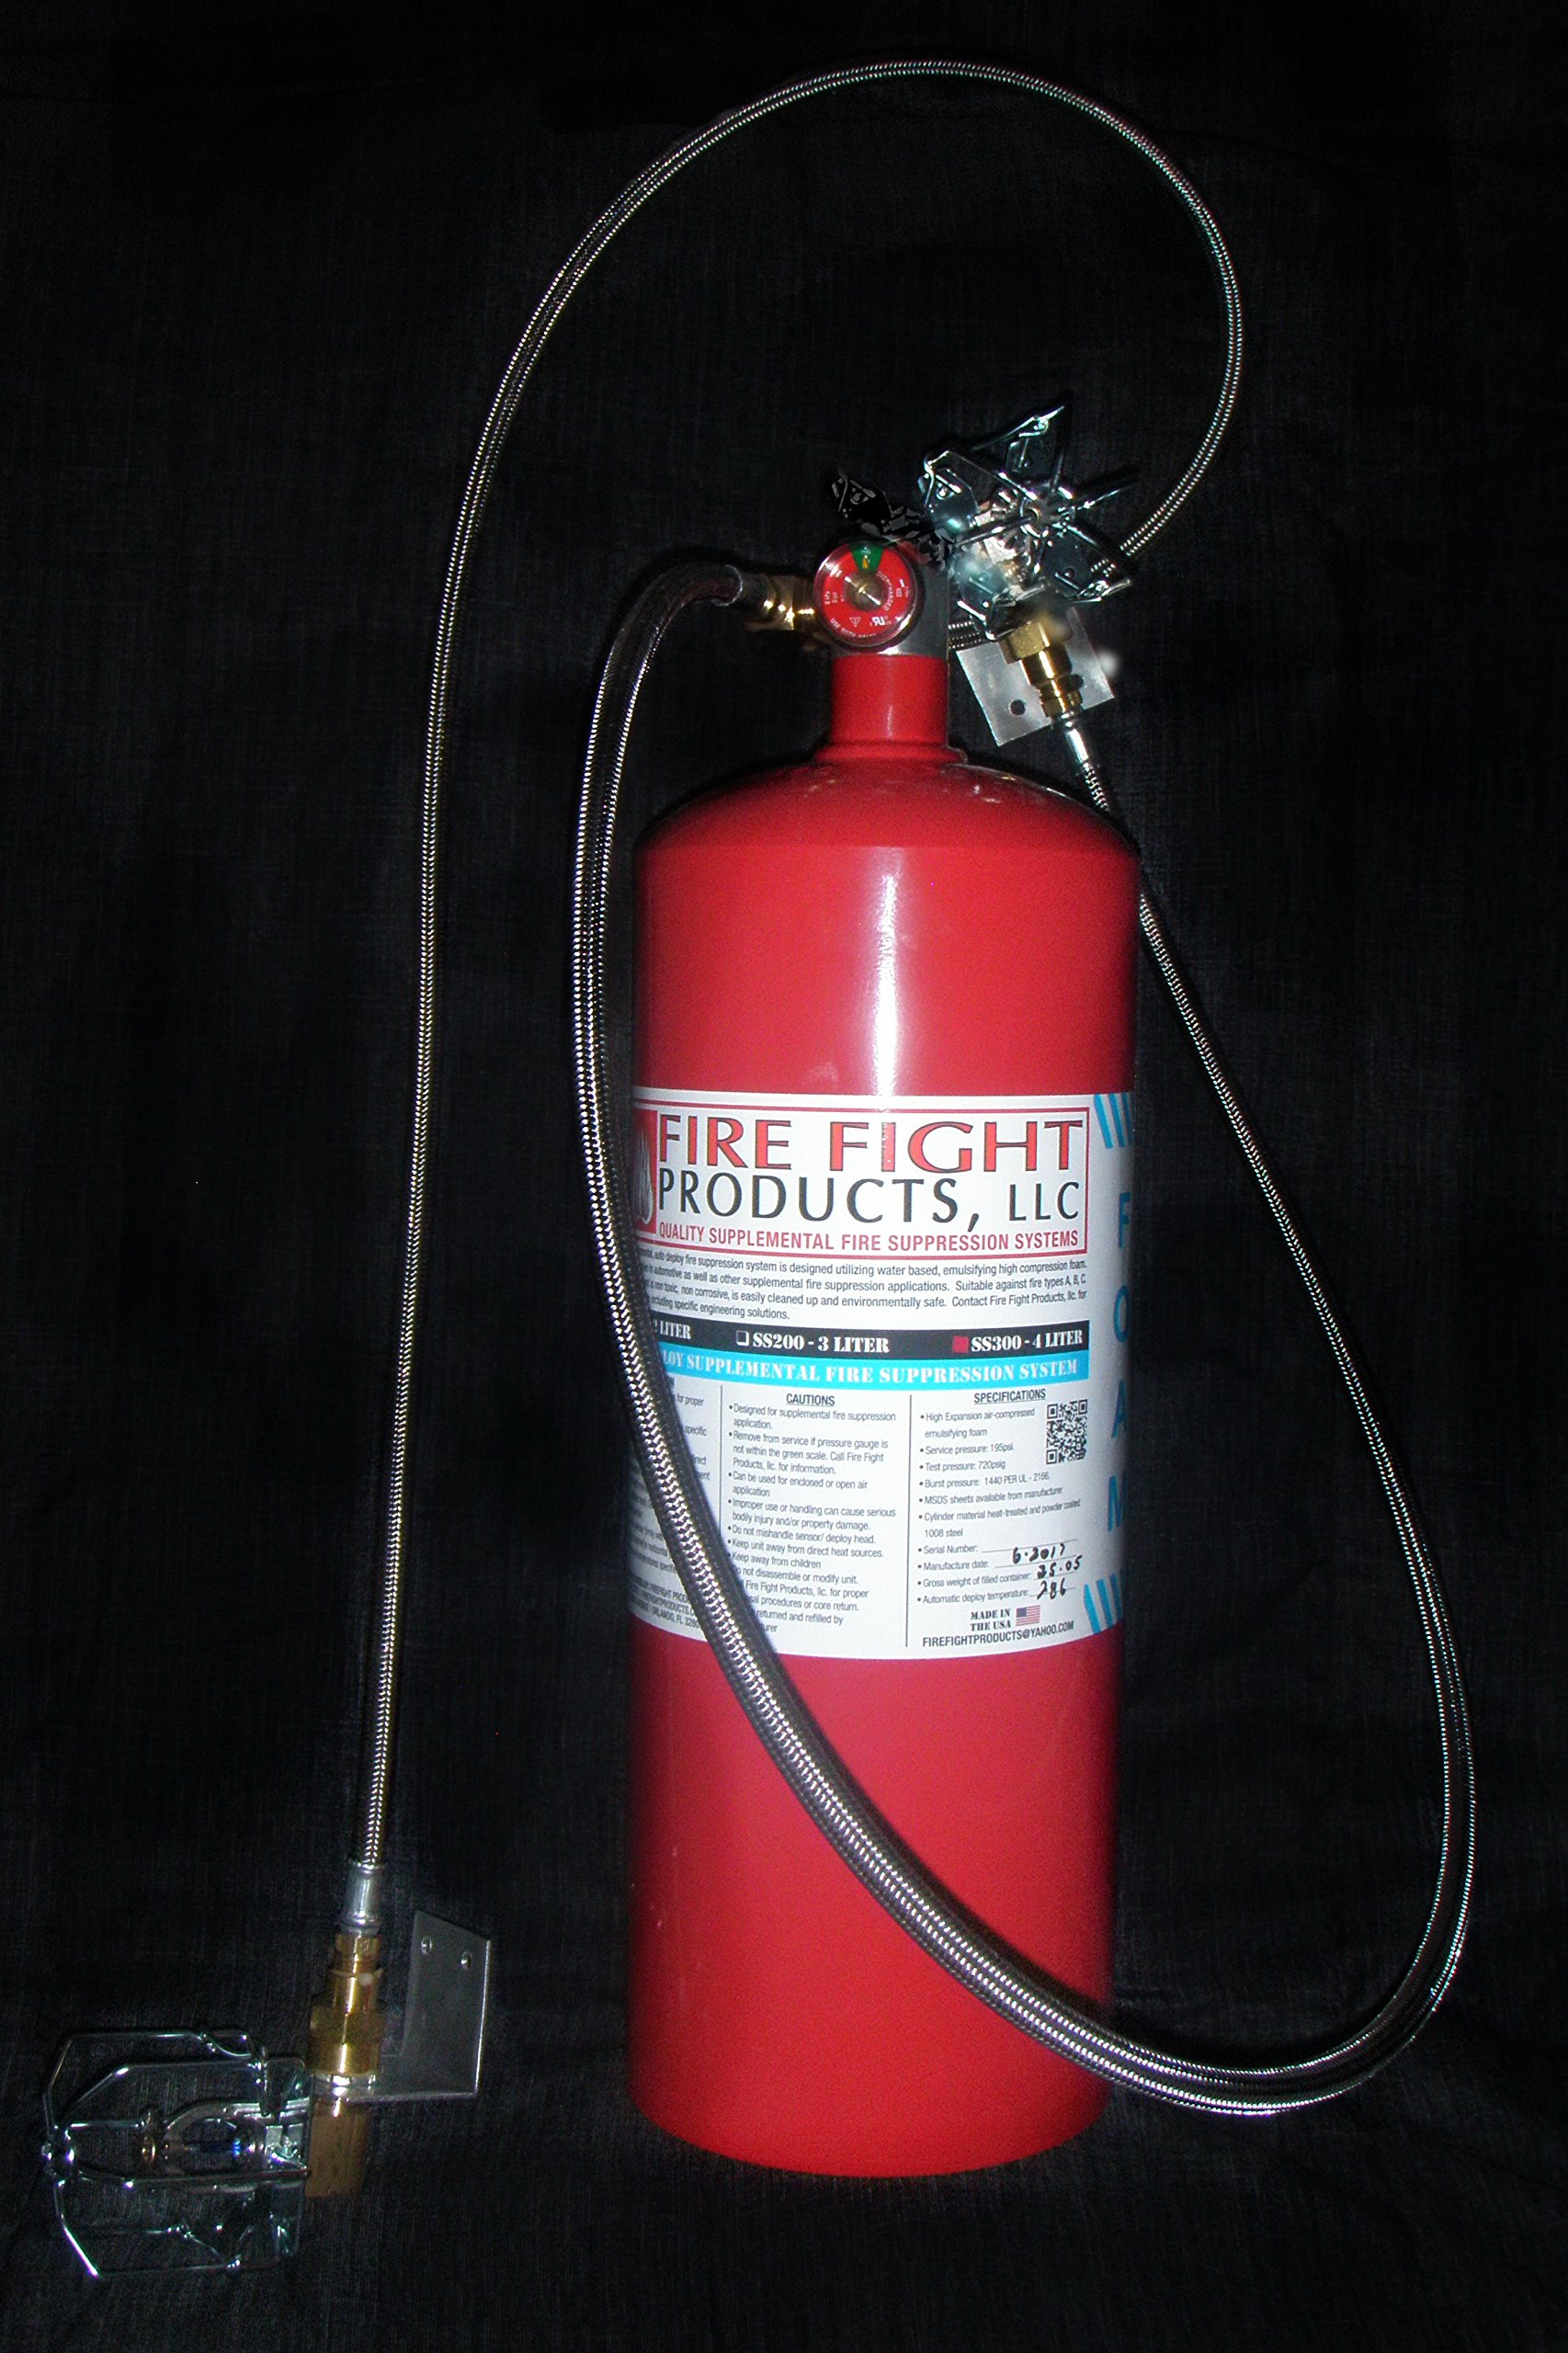 Fire Fight Products - SS300-R4-DOUBLE Large Format 4 Liter FOAM Automatic release Fire Suppression System